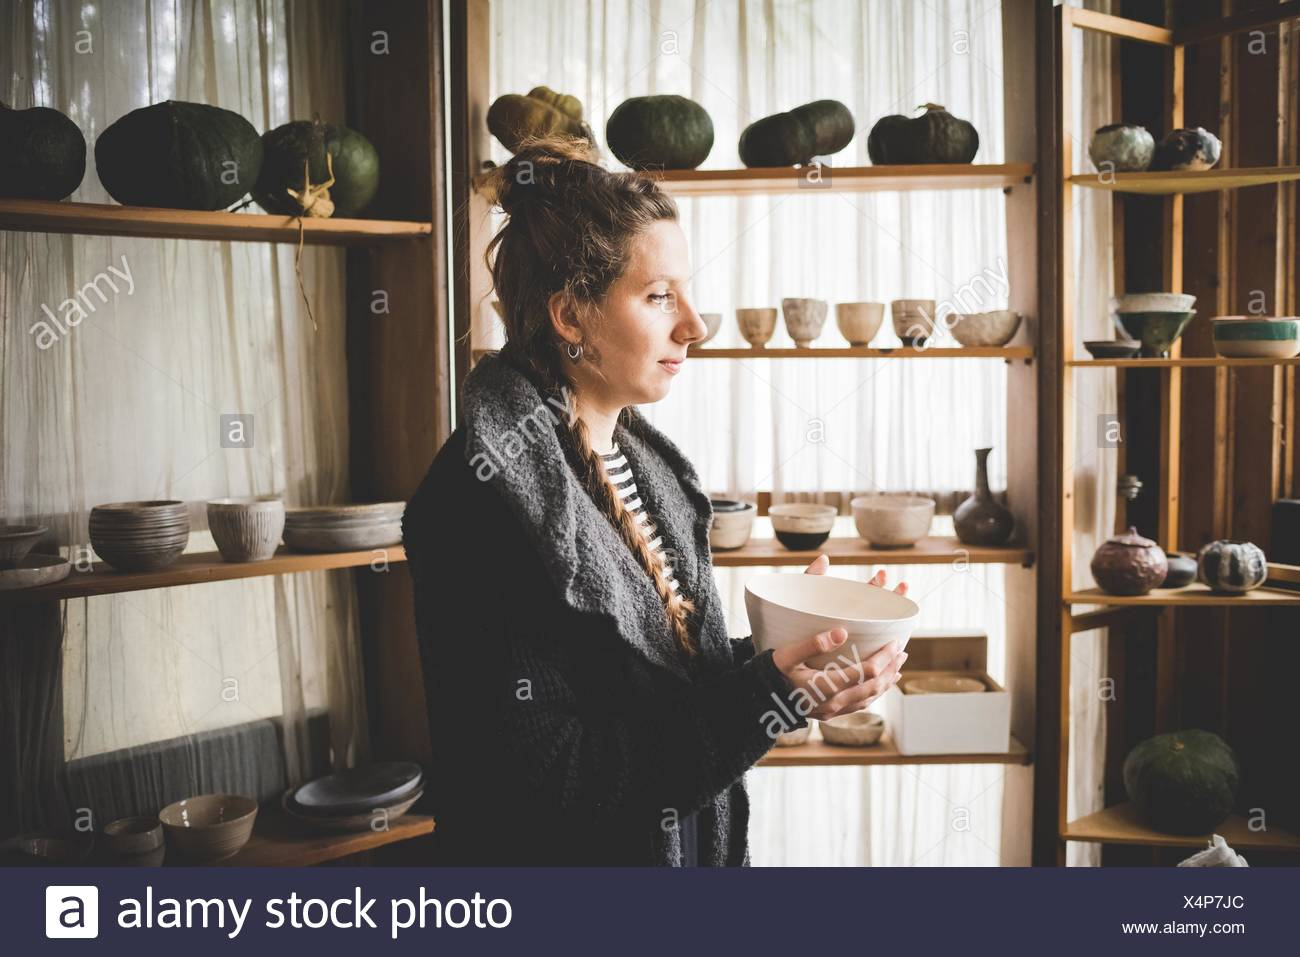 Side view of young woman holding ceramic dish in front of shelves displaying clay pots and pumpkins - Stock Image